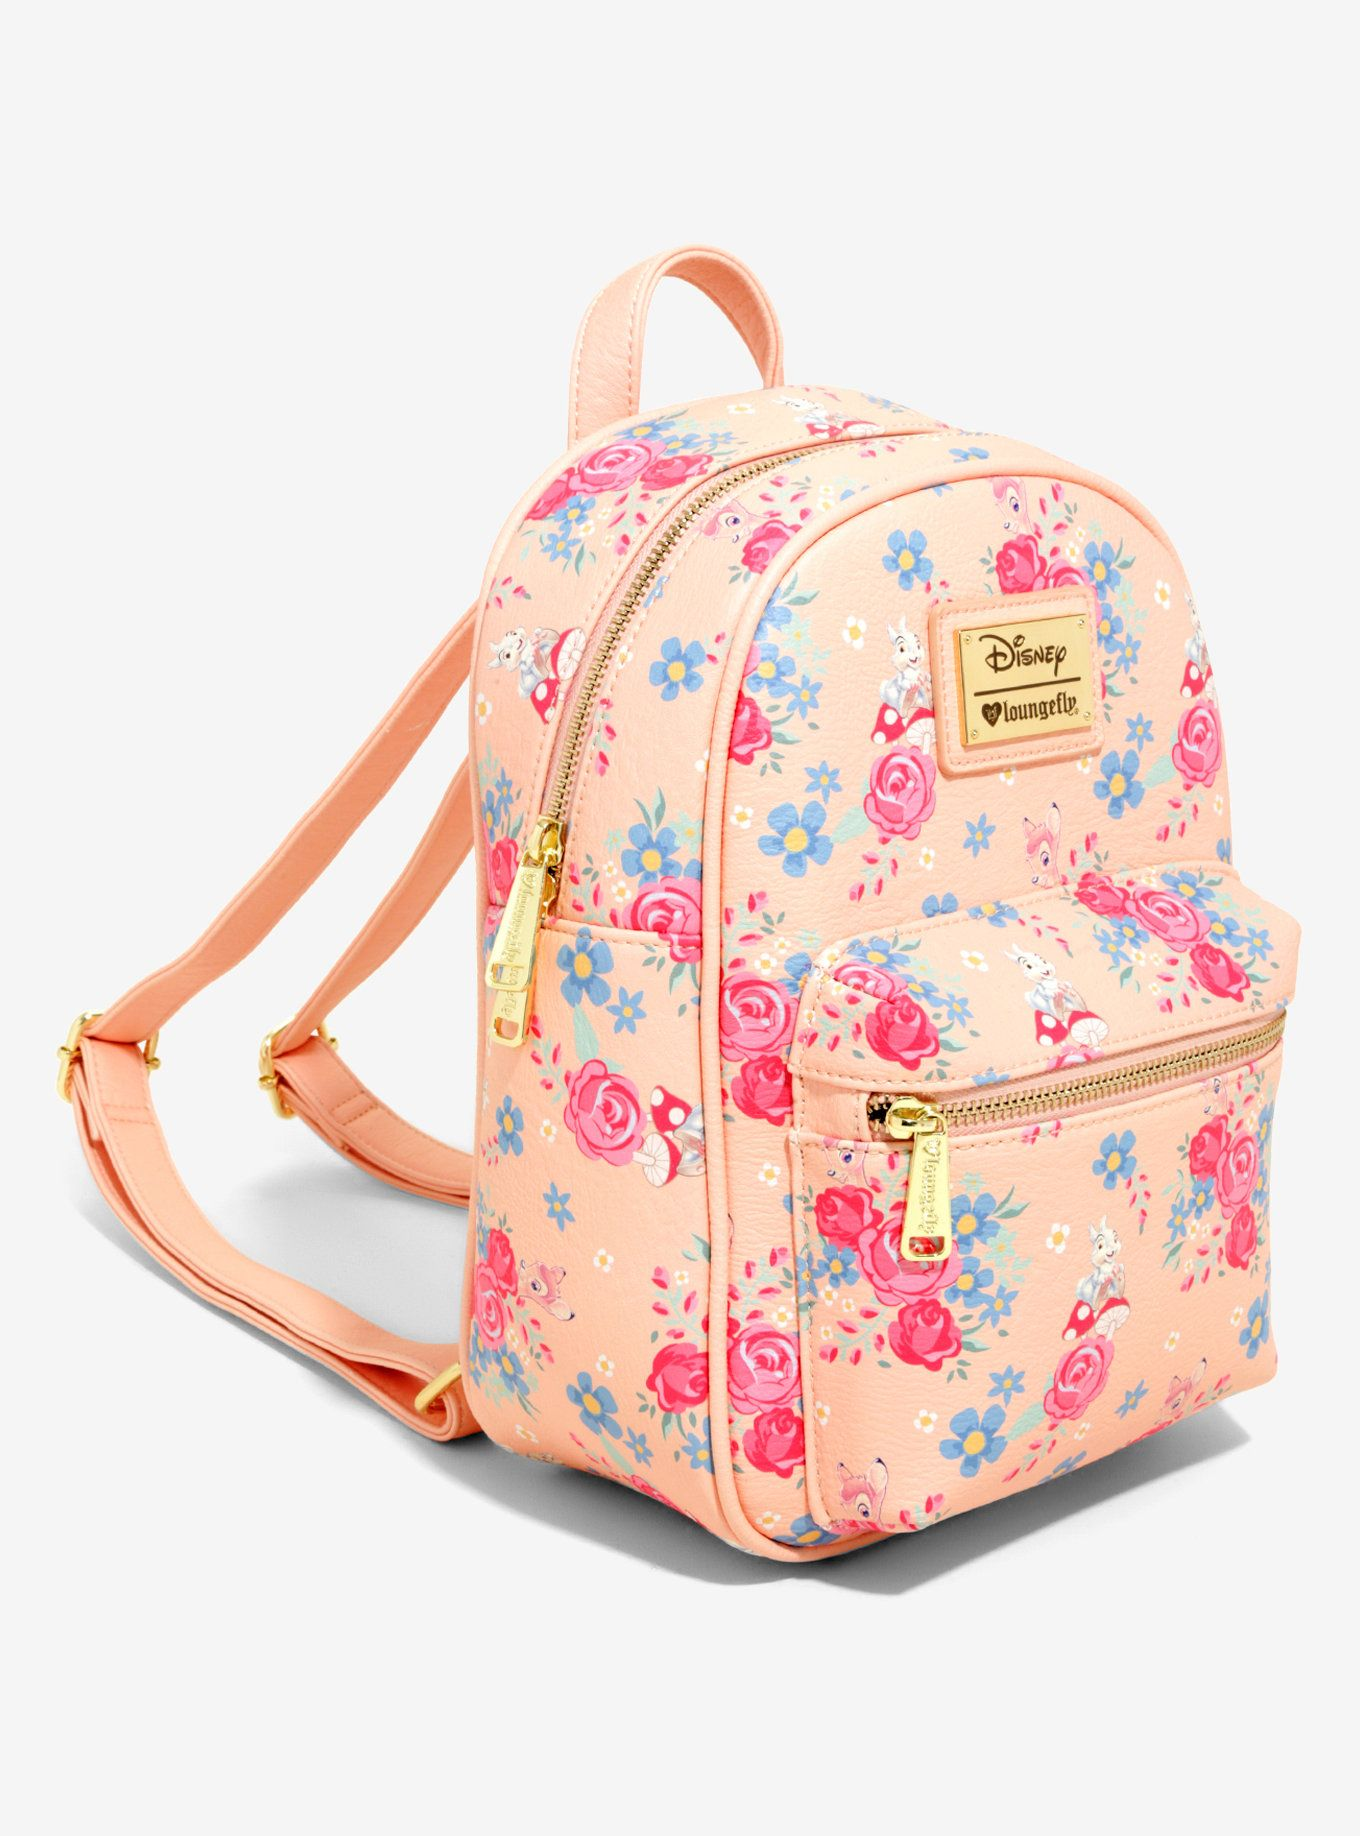 0661605ba40 Loungefly Disney Bambi Floral Mini Backpack - BoxLunch Exclusive ...